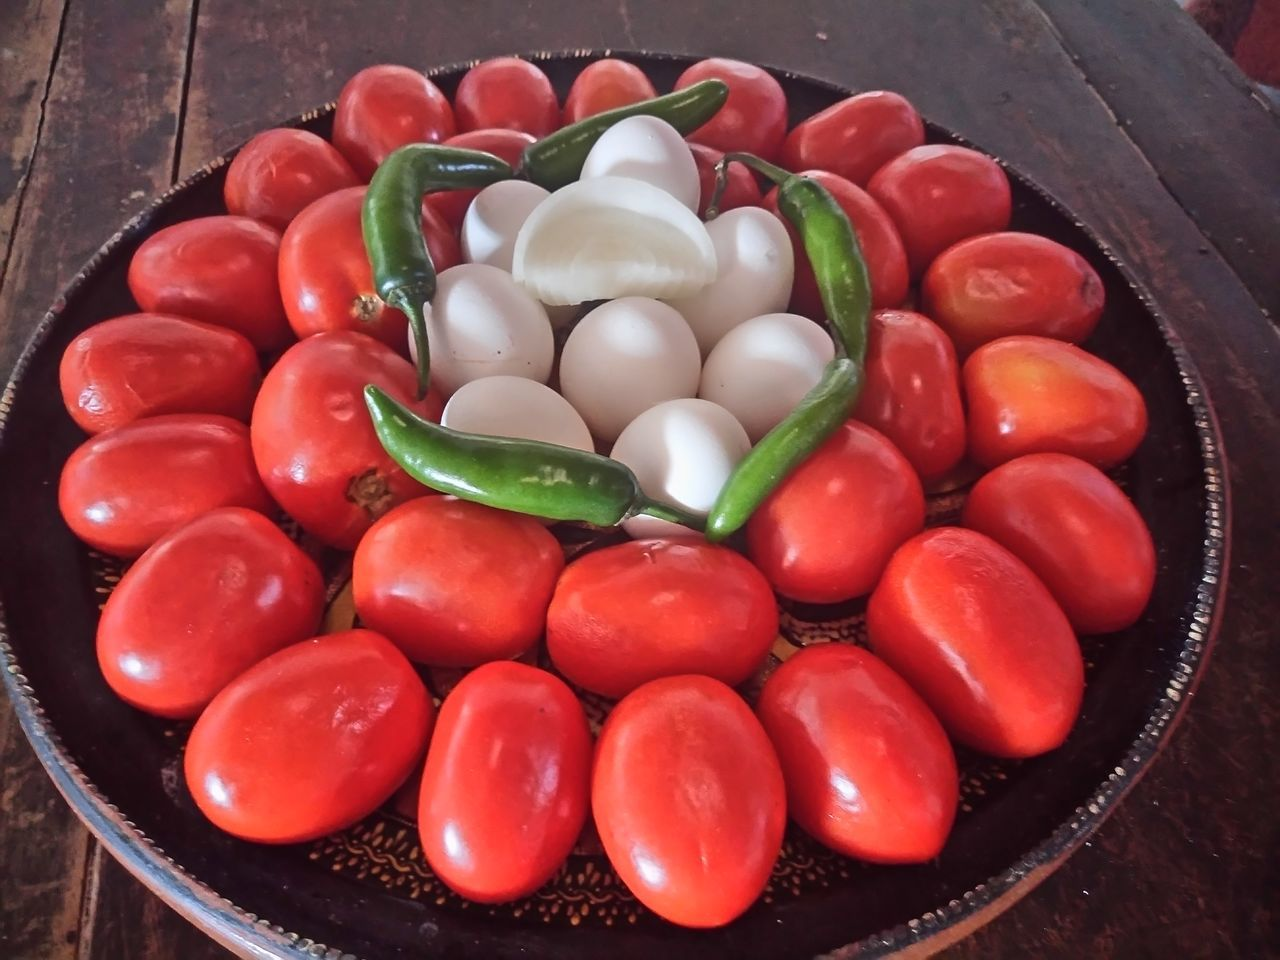 Huevos a la mexicana Red Freshness Food Food And Drink Healthy Eating No People Close-up Ready-to-eat Indoors  Day Eggs... Mexico Tomatoes Chilies Onion Egg Mexican Mexican Food